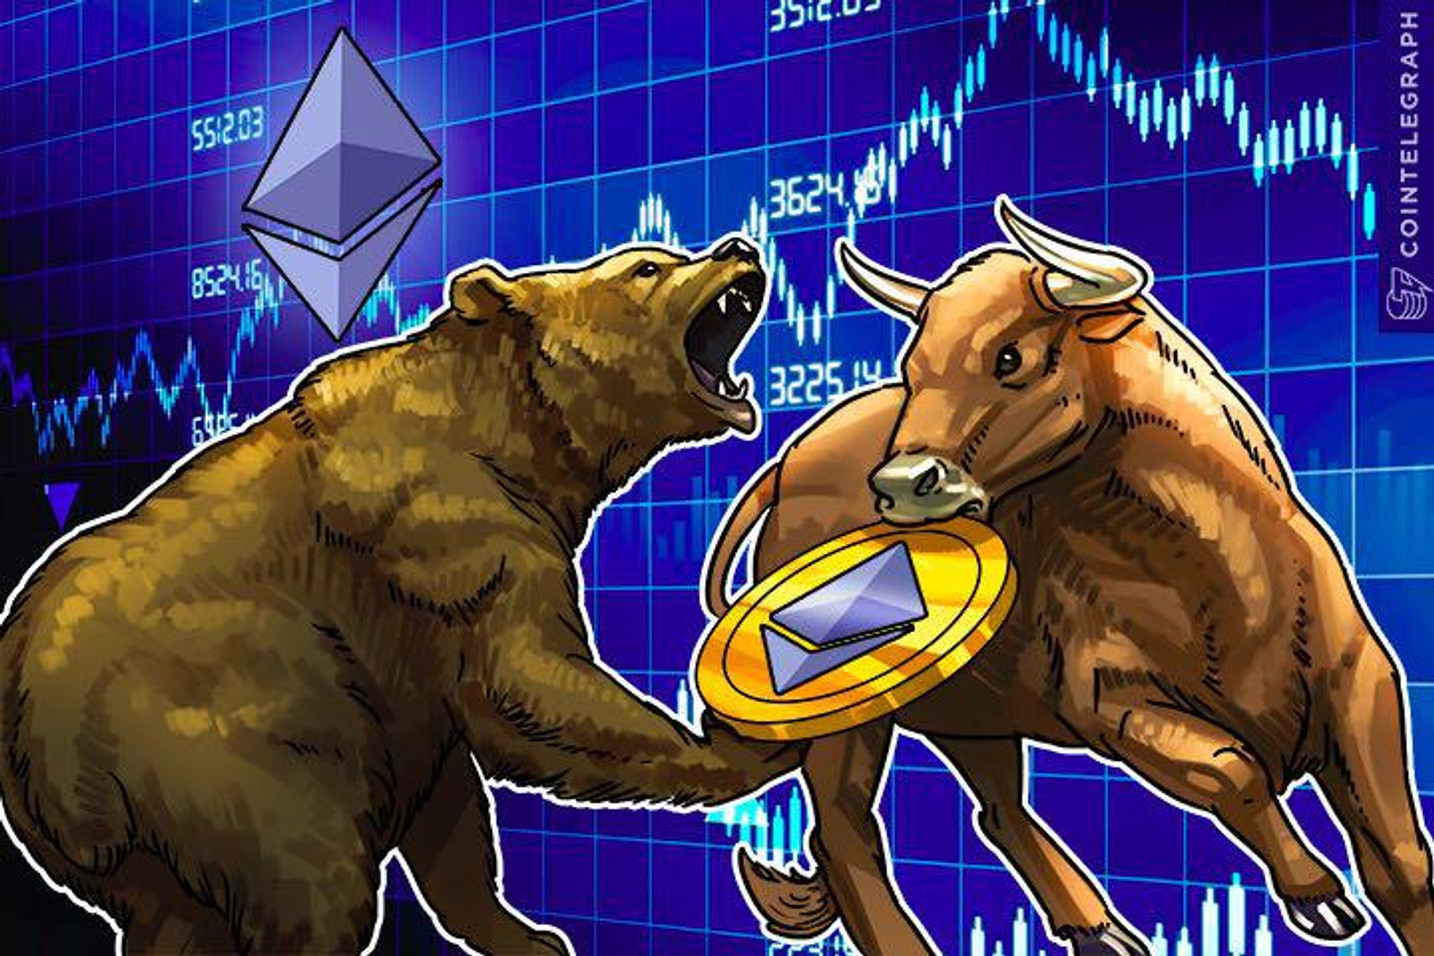 Ethereum Price: The Week of Feb. 22-28